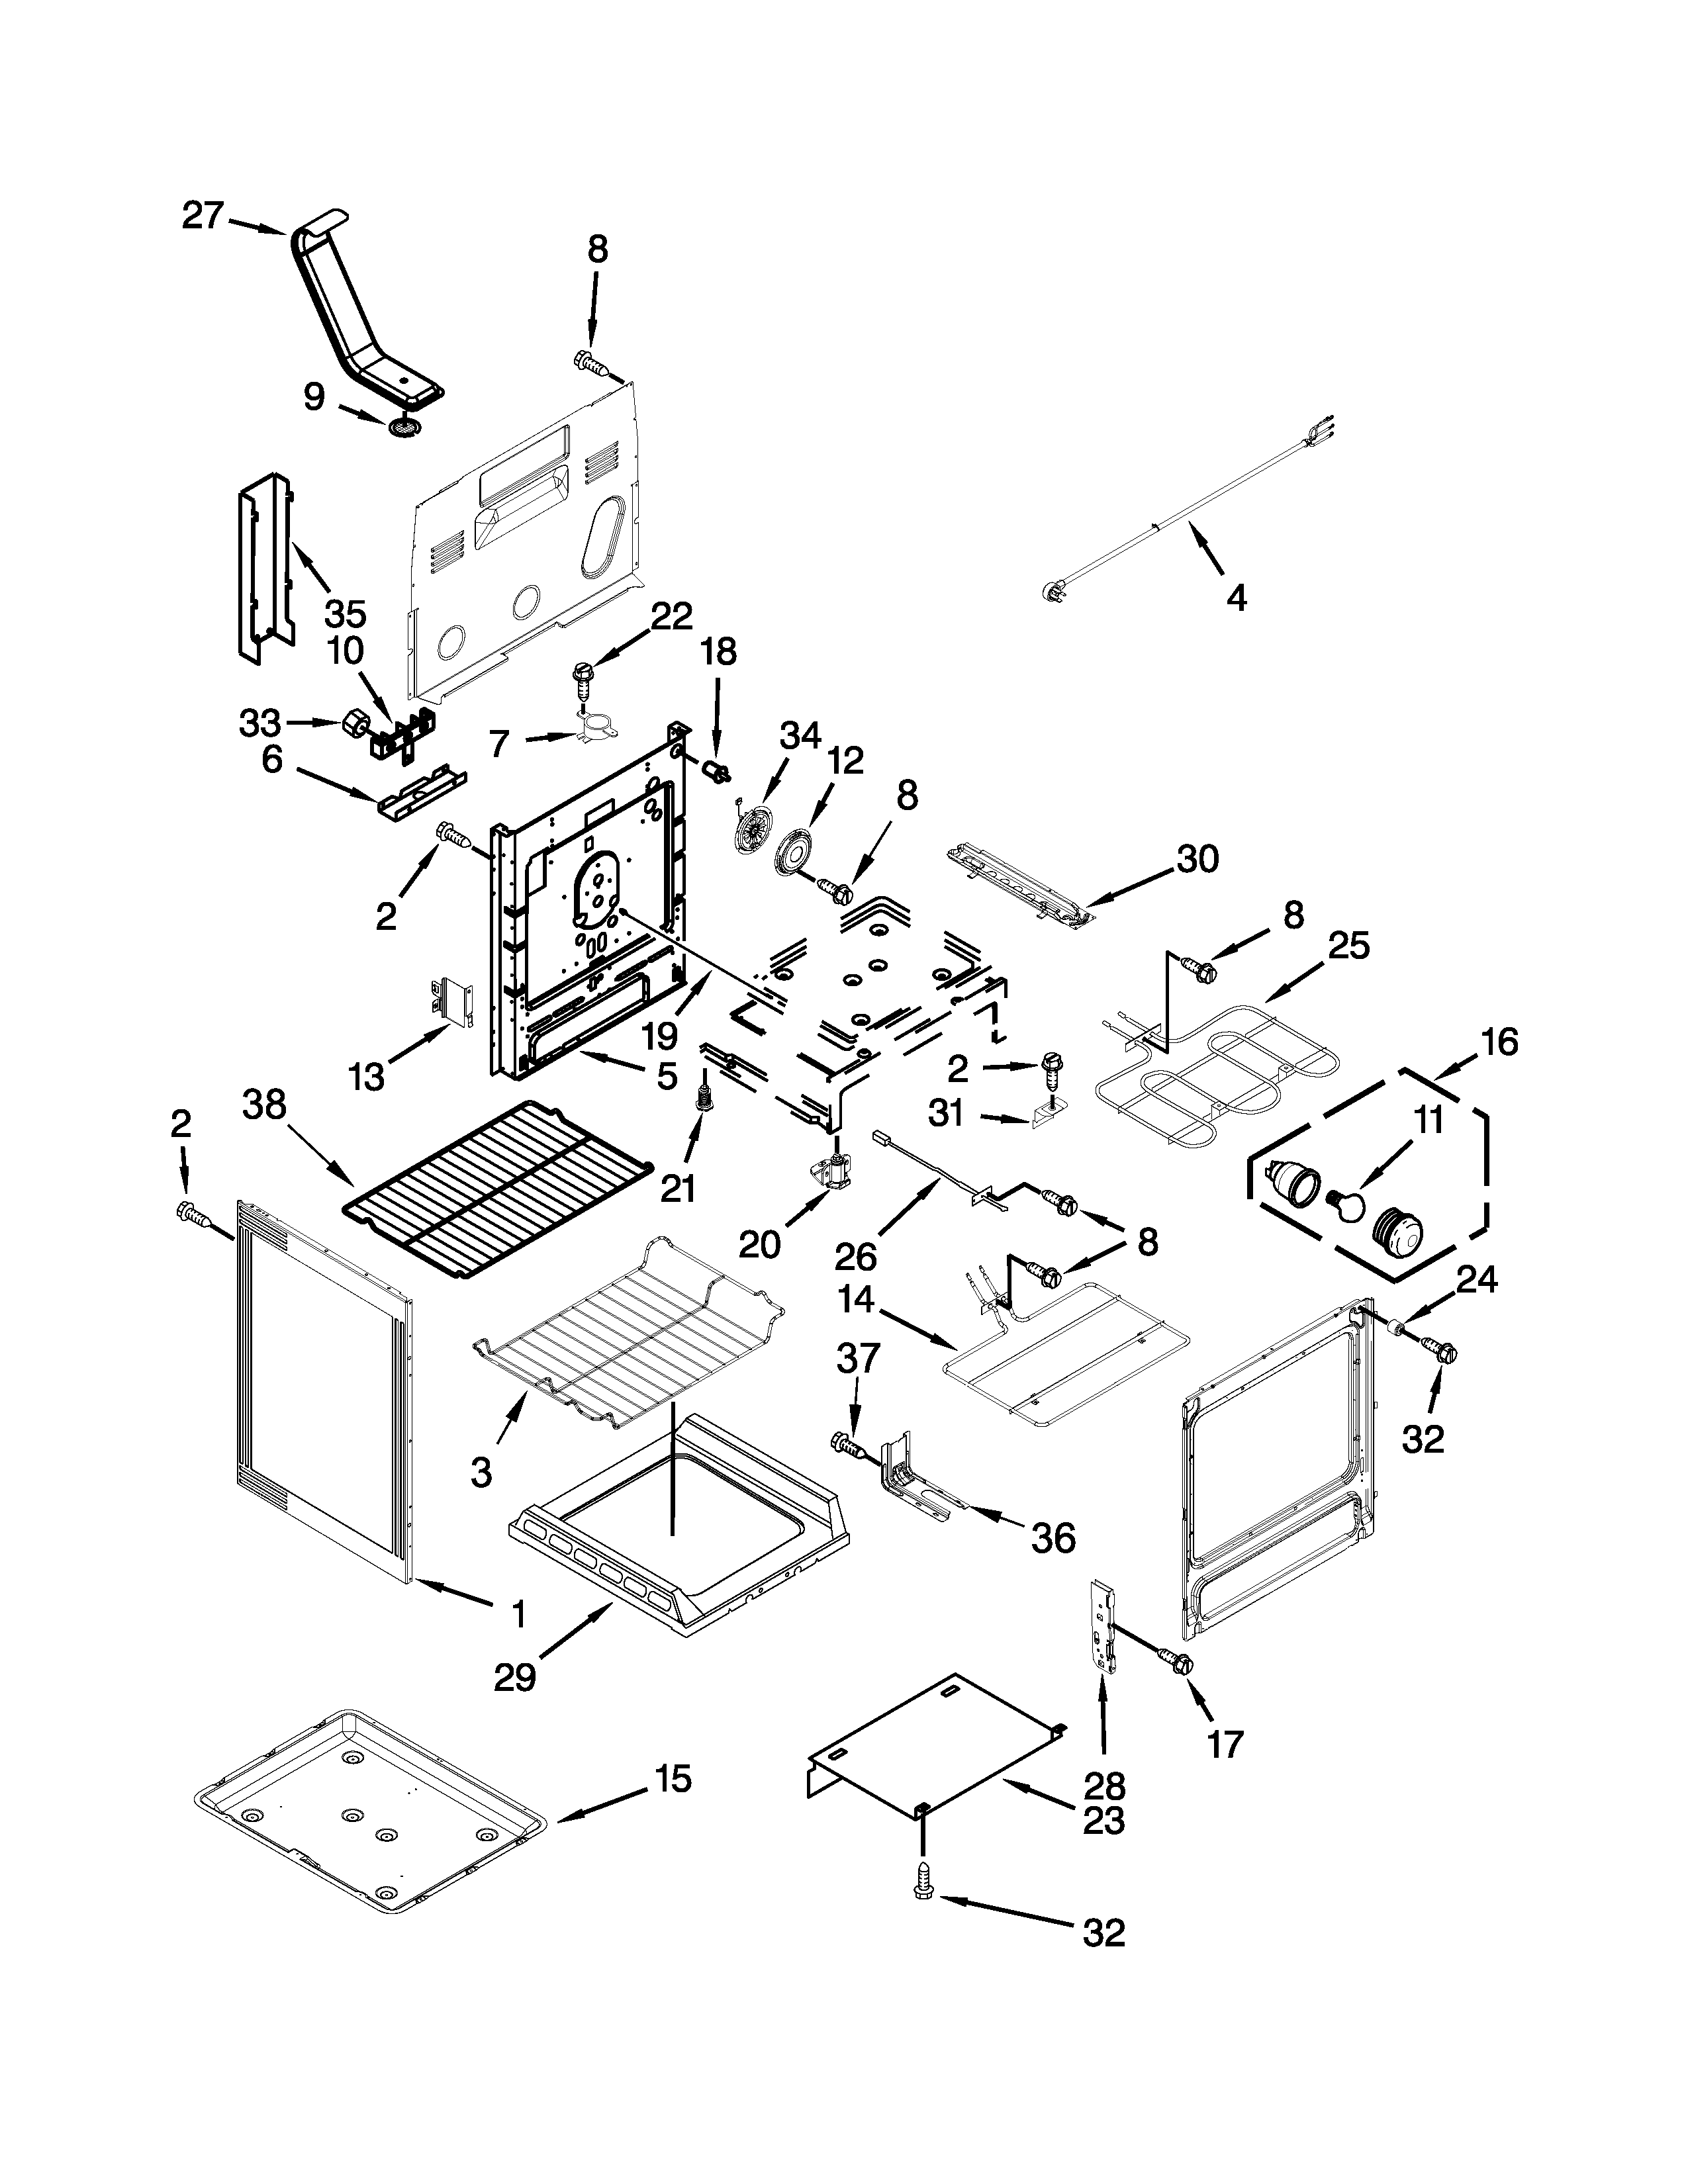 Maytag YMER8775BS0 chassis parts diagram